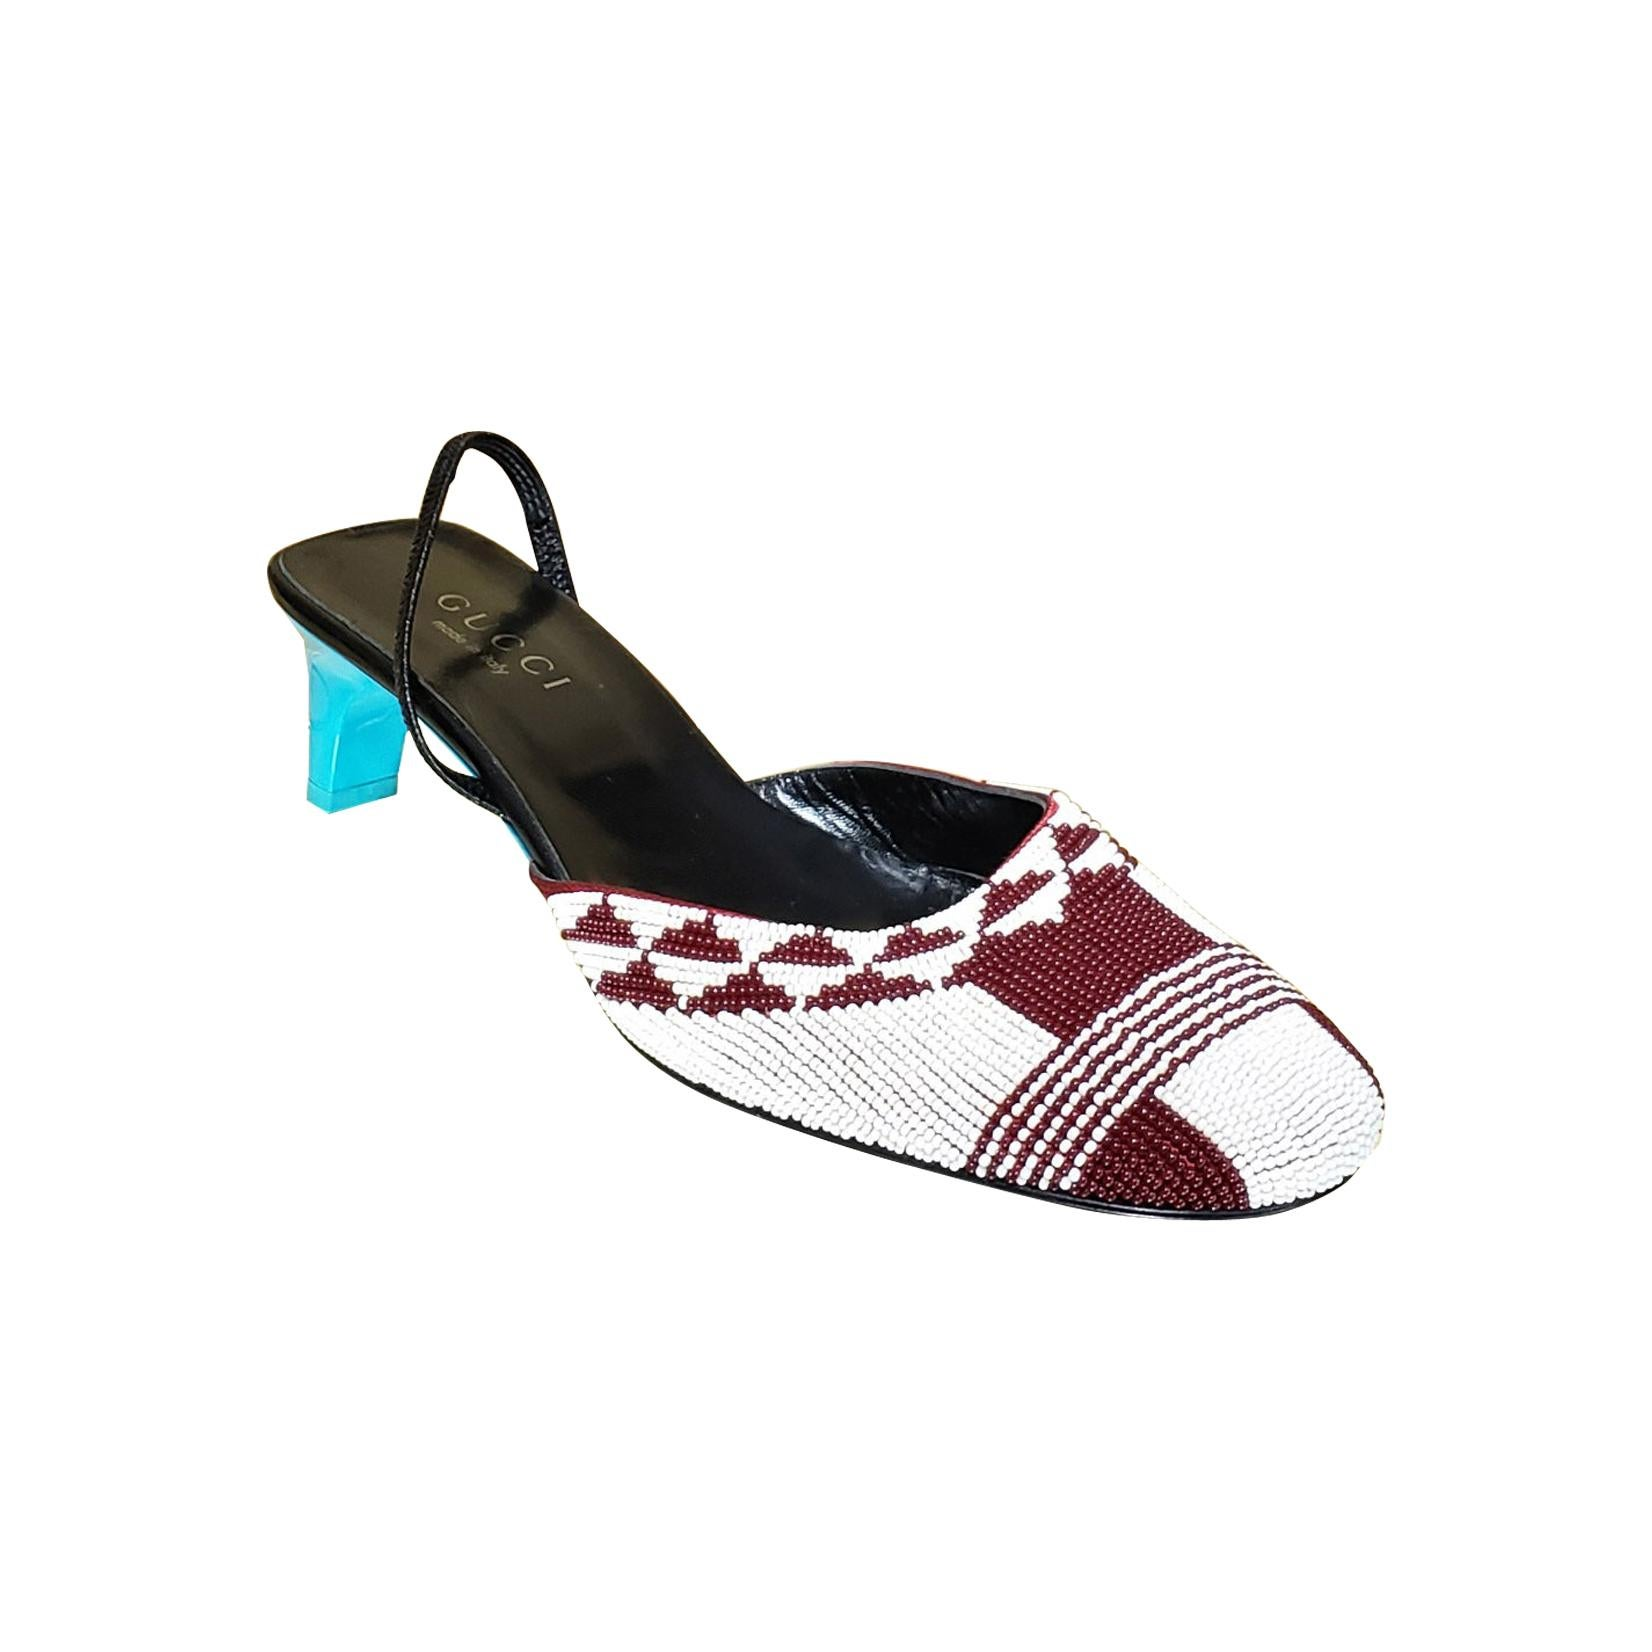 S/S 1999 VINTAGE ICONIC TOM FORD for GUCCI BEADED SHOES  8